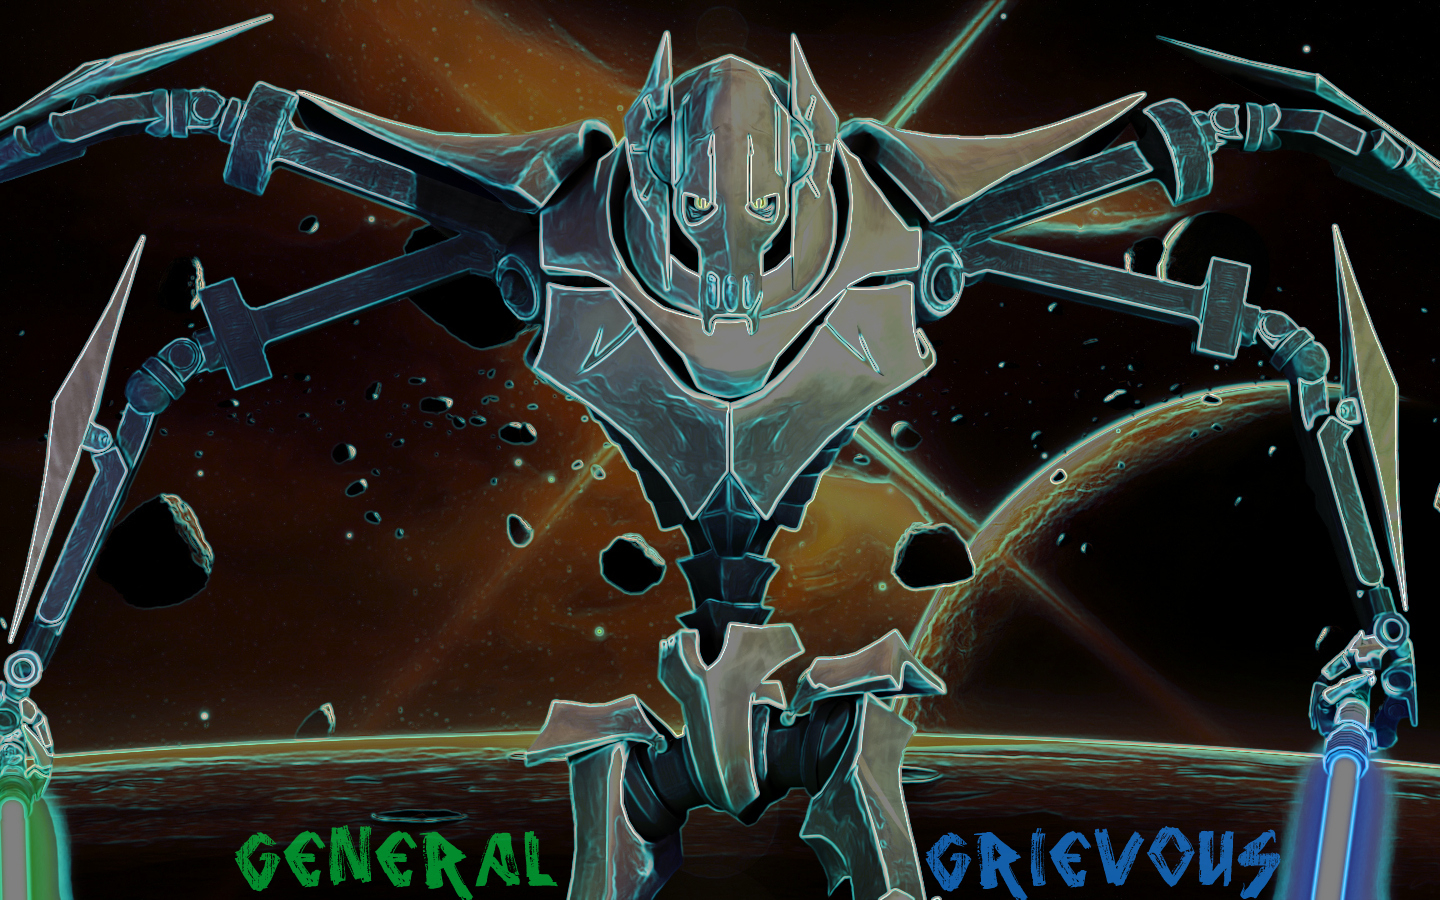 Free Download General Grievous Wallpaper The Star Wars Underworld